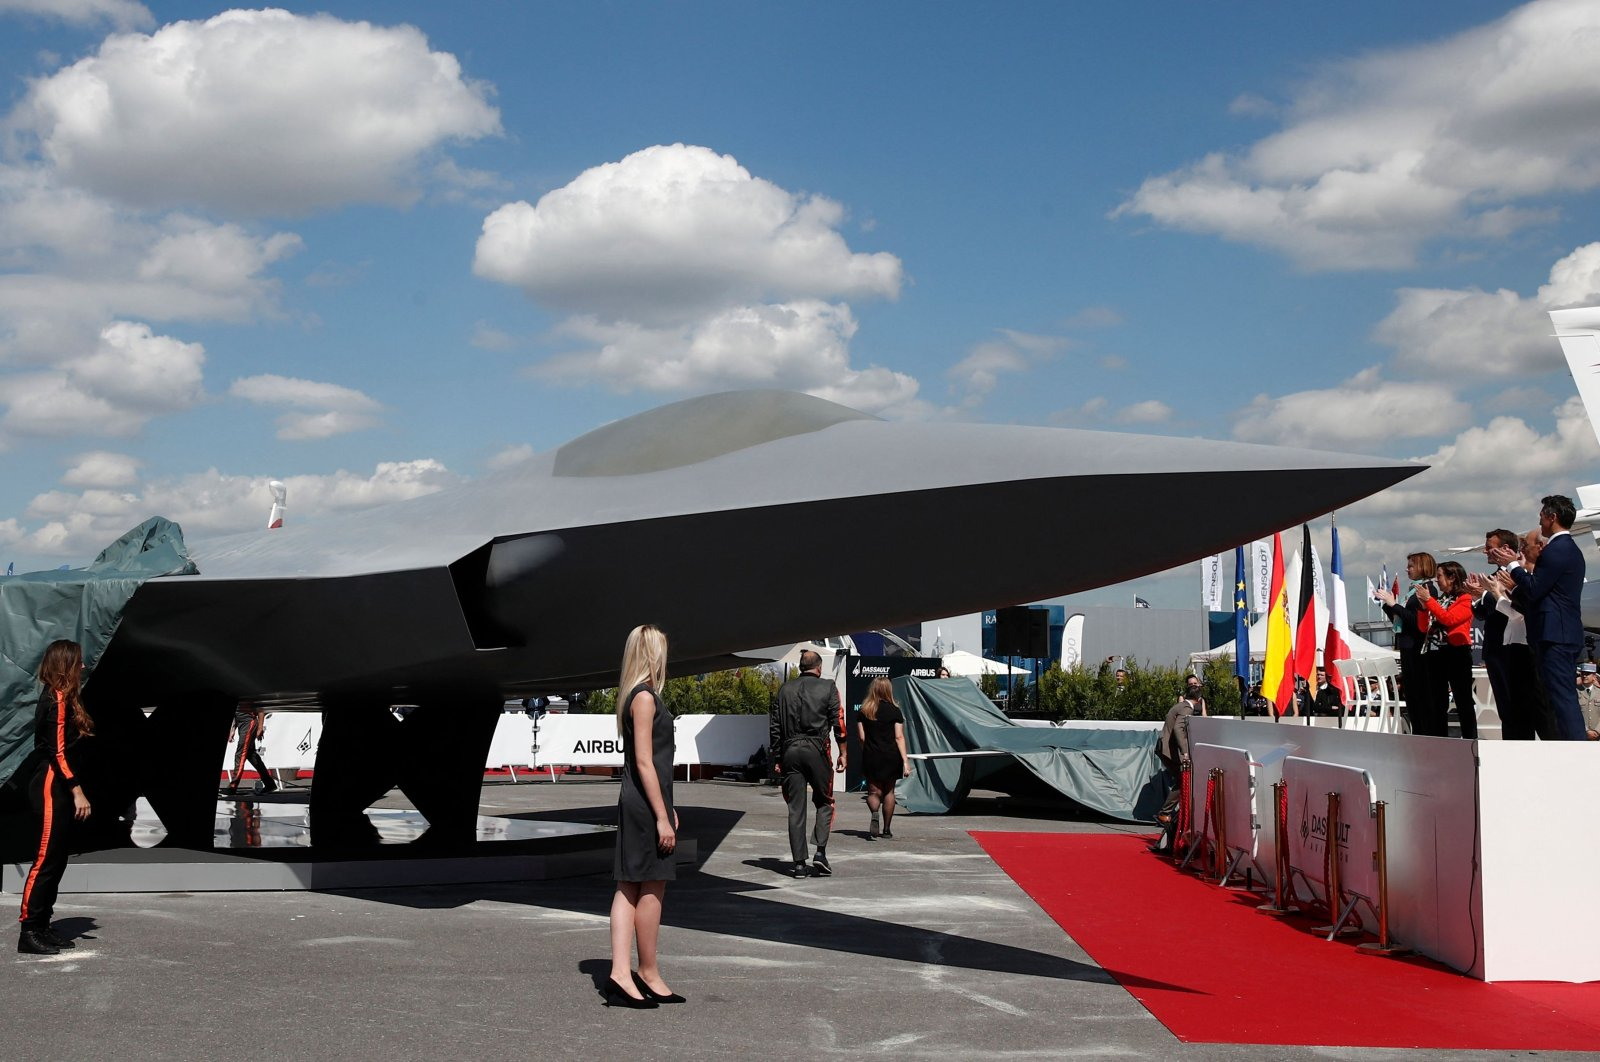 In this file photo taken on June 17, 2019, French President Emmanuel Macron, Eric Trappier, chairperson and CEO of Dassault Aviation, Spanish Defense Minister Margarita Robles, French Defense Minister Florence Parly and German Defense Minister Ursula von der Leyen attend the unveiling of the full-scale jet fighter model of the French-German-Spanish new generation Future Combat Air System (FCAS), during the 53rd International Paris Air Show at Le Bourget Airport near Paris, France. (AFP Photo)